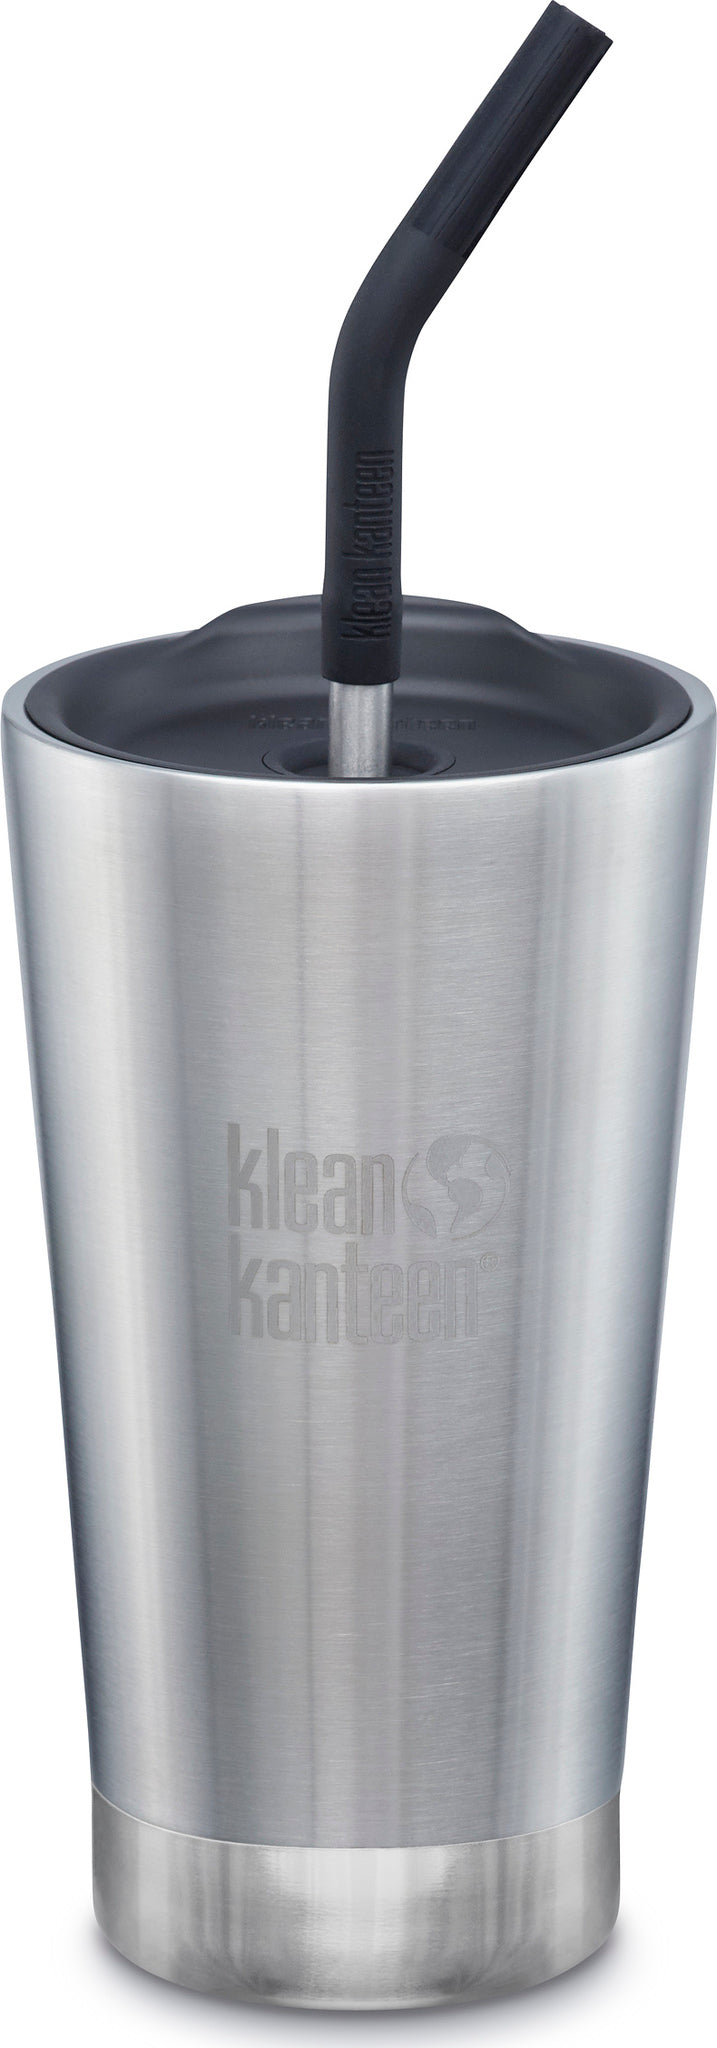 23e01f52a2c Klean Kanteen Insulated Tumbler 16oz - Straw Lid and Straw Brushed  Stainless ...